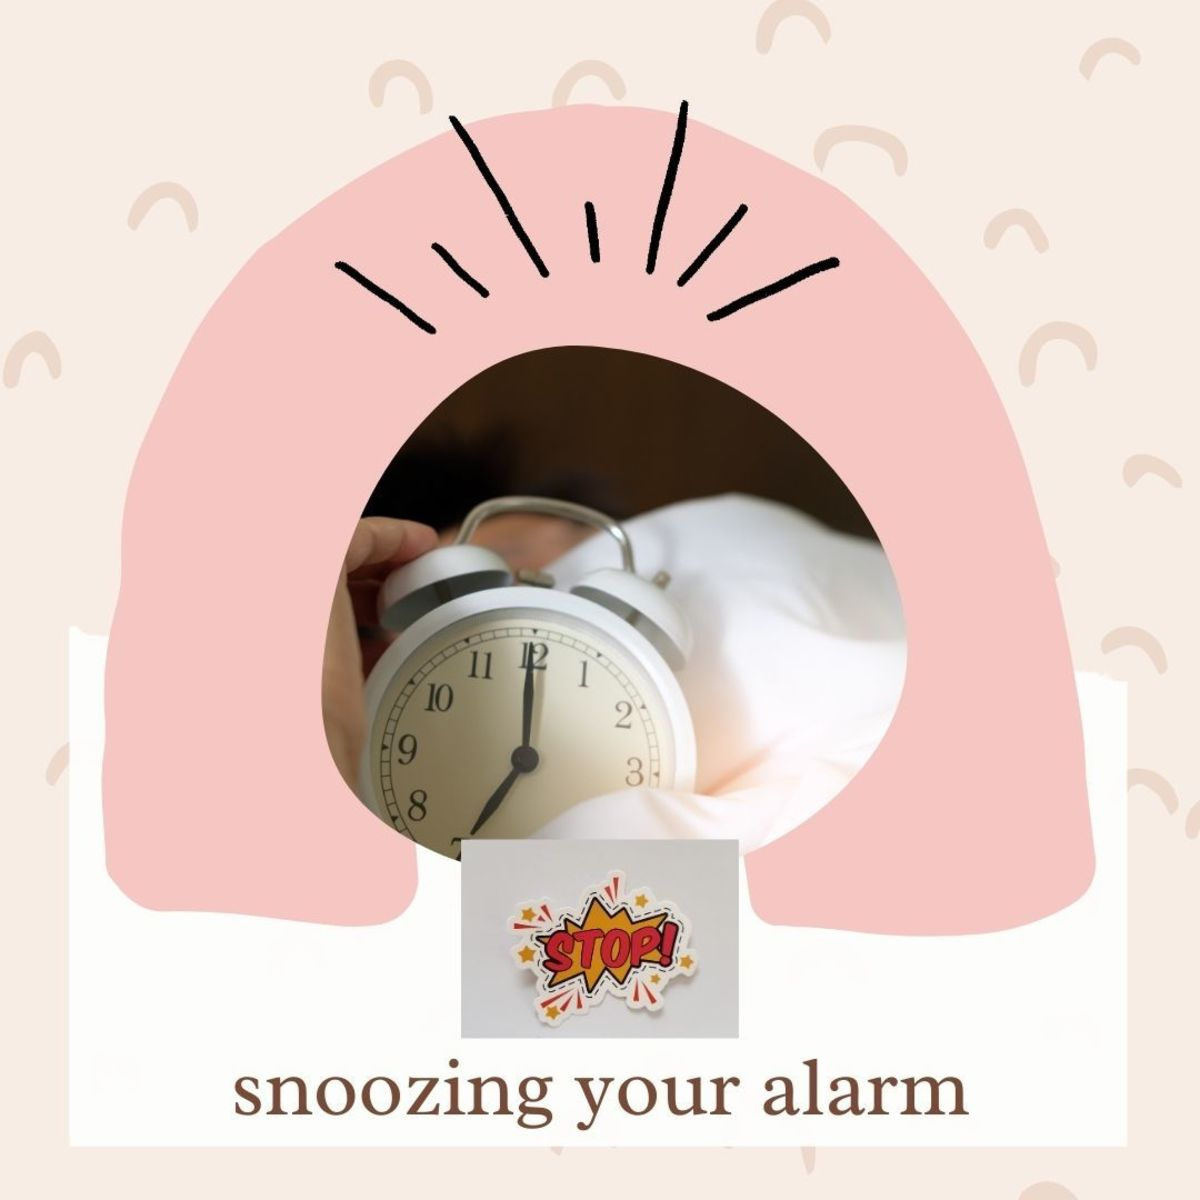 Don't snooze your alarm